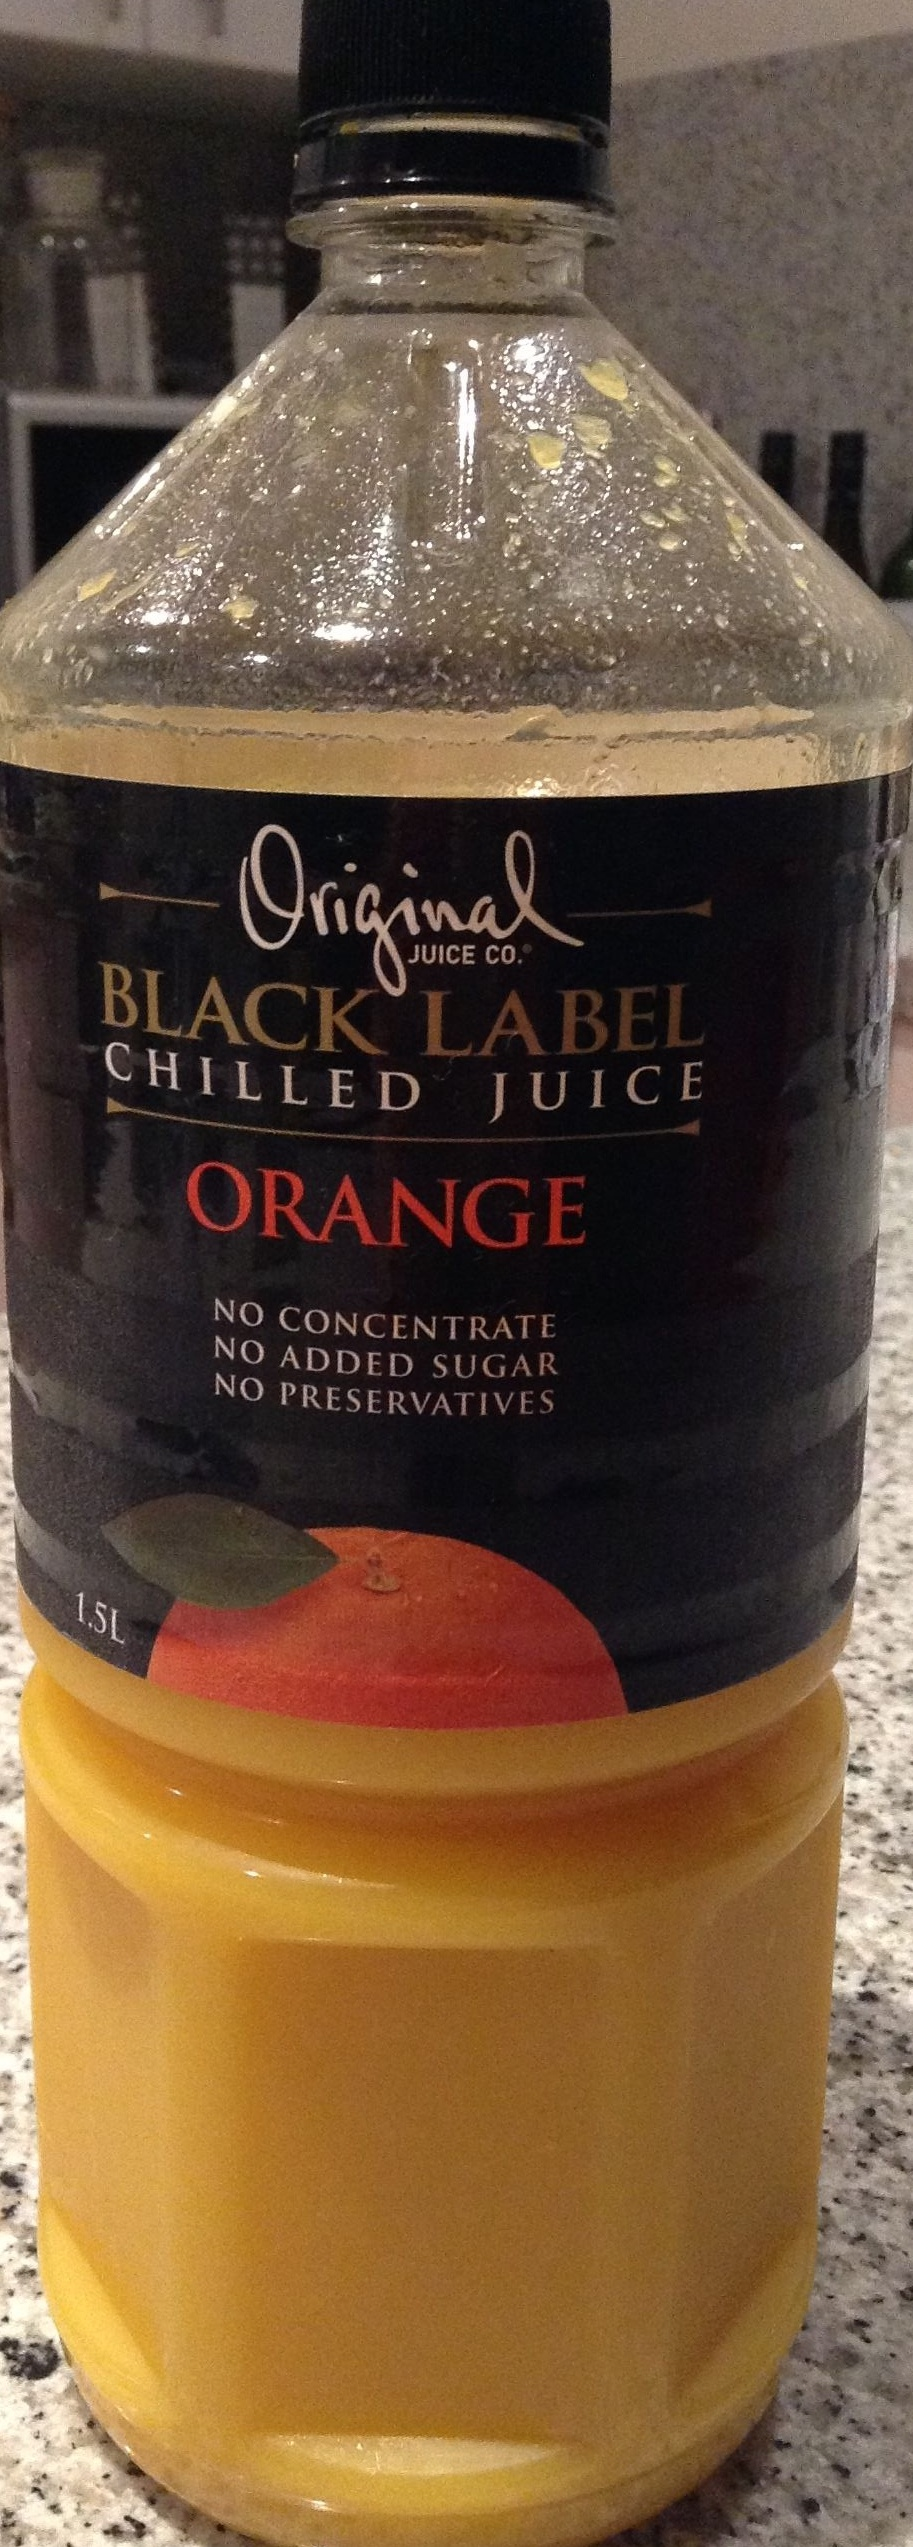 Original juice co- black label ORANGE - Product - en